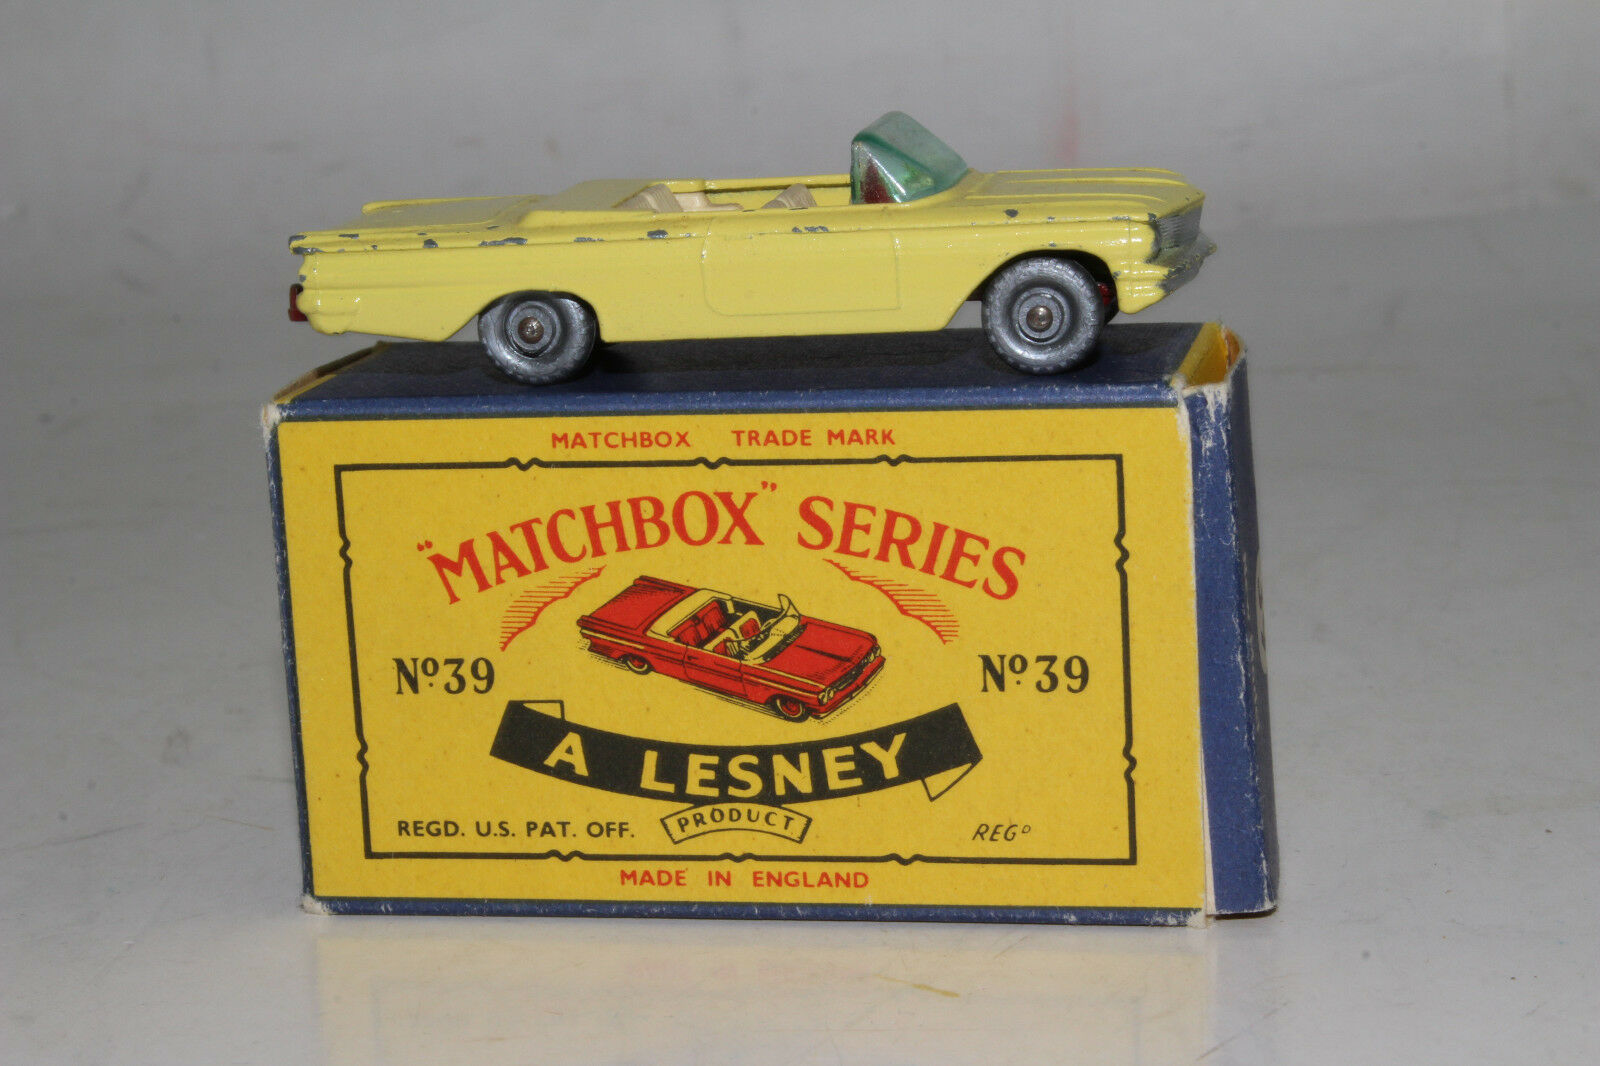 MATCHBOX LESNEY B PONTIAC CONgreenIBLE, YELLOW, MAROON BASE, SPW, BOXED TYPE C